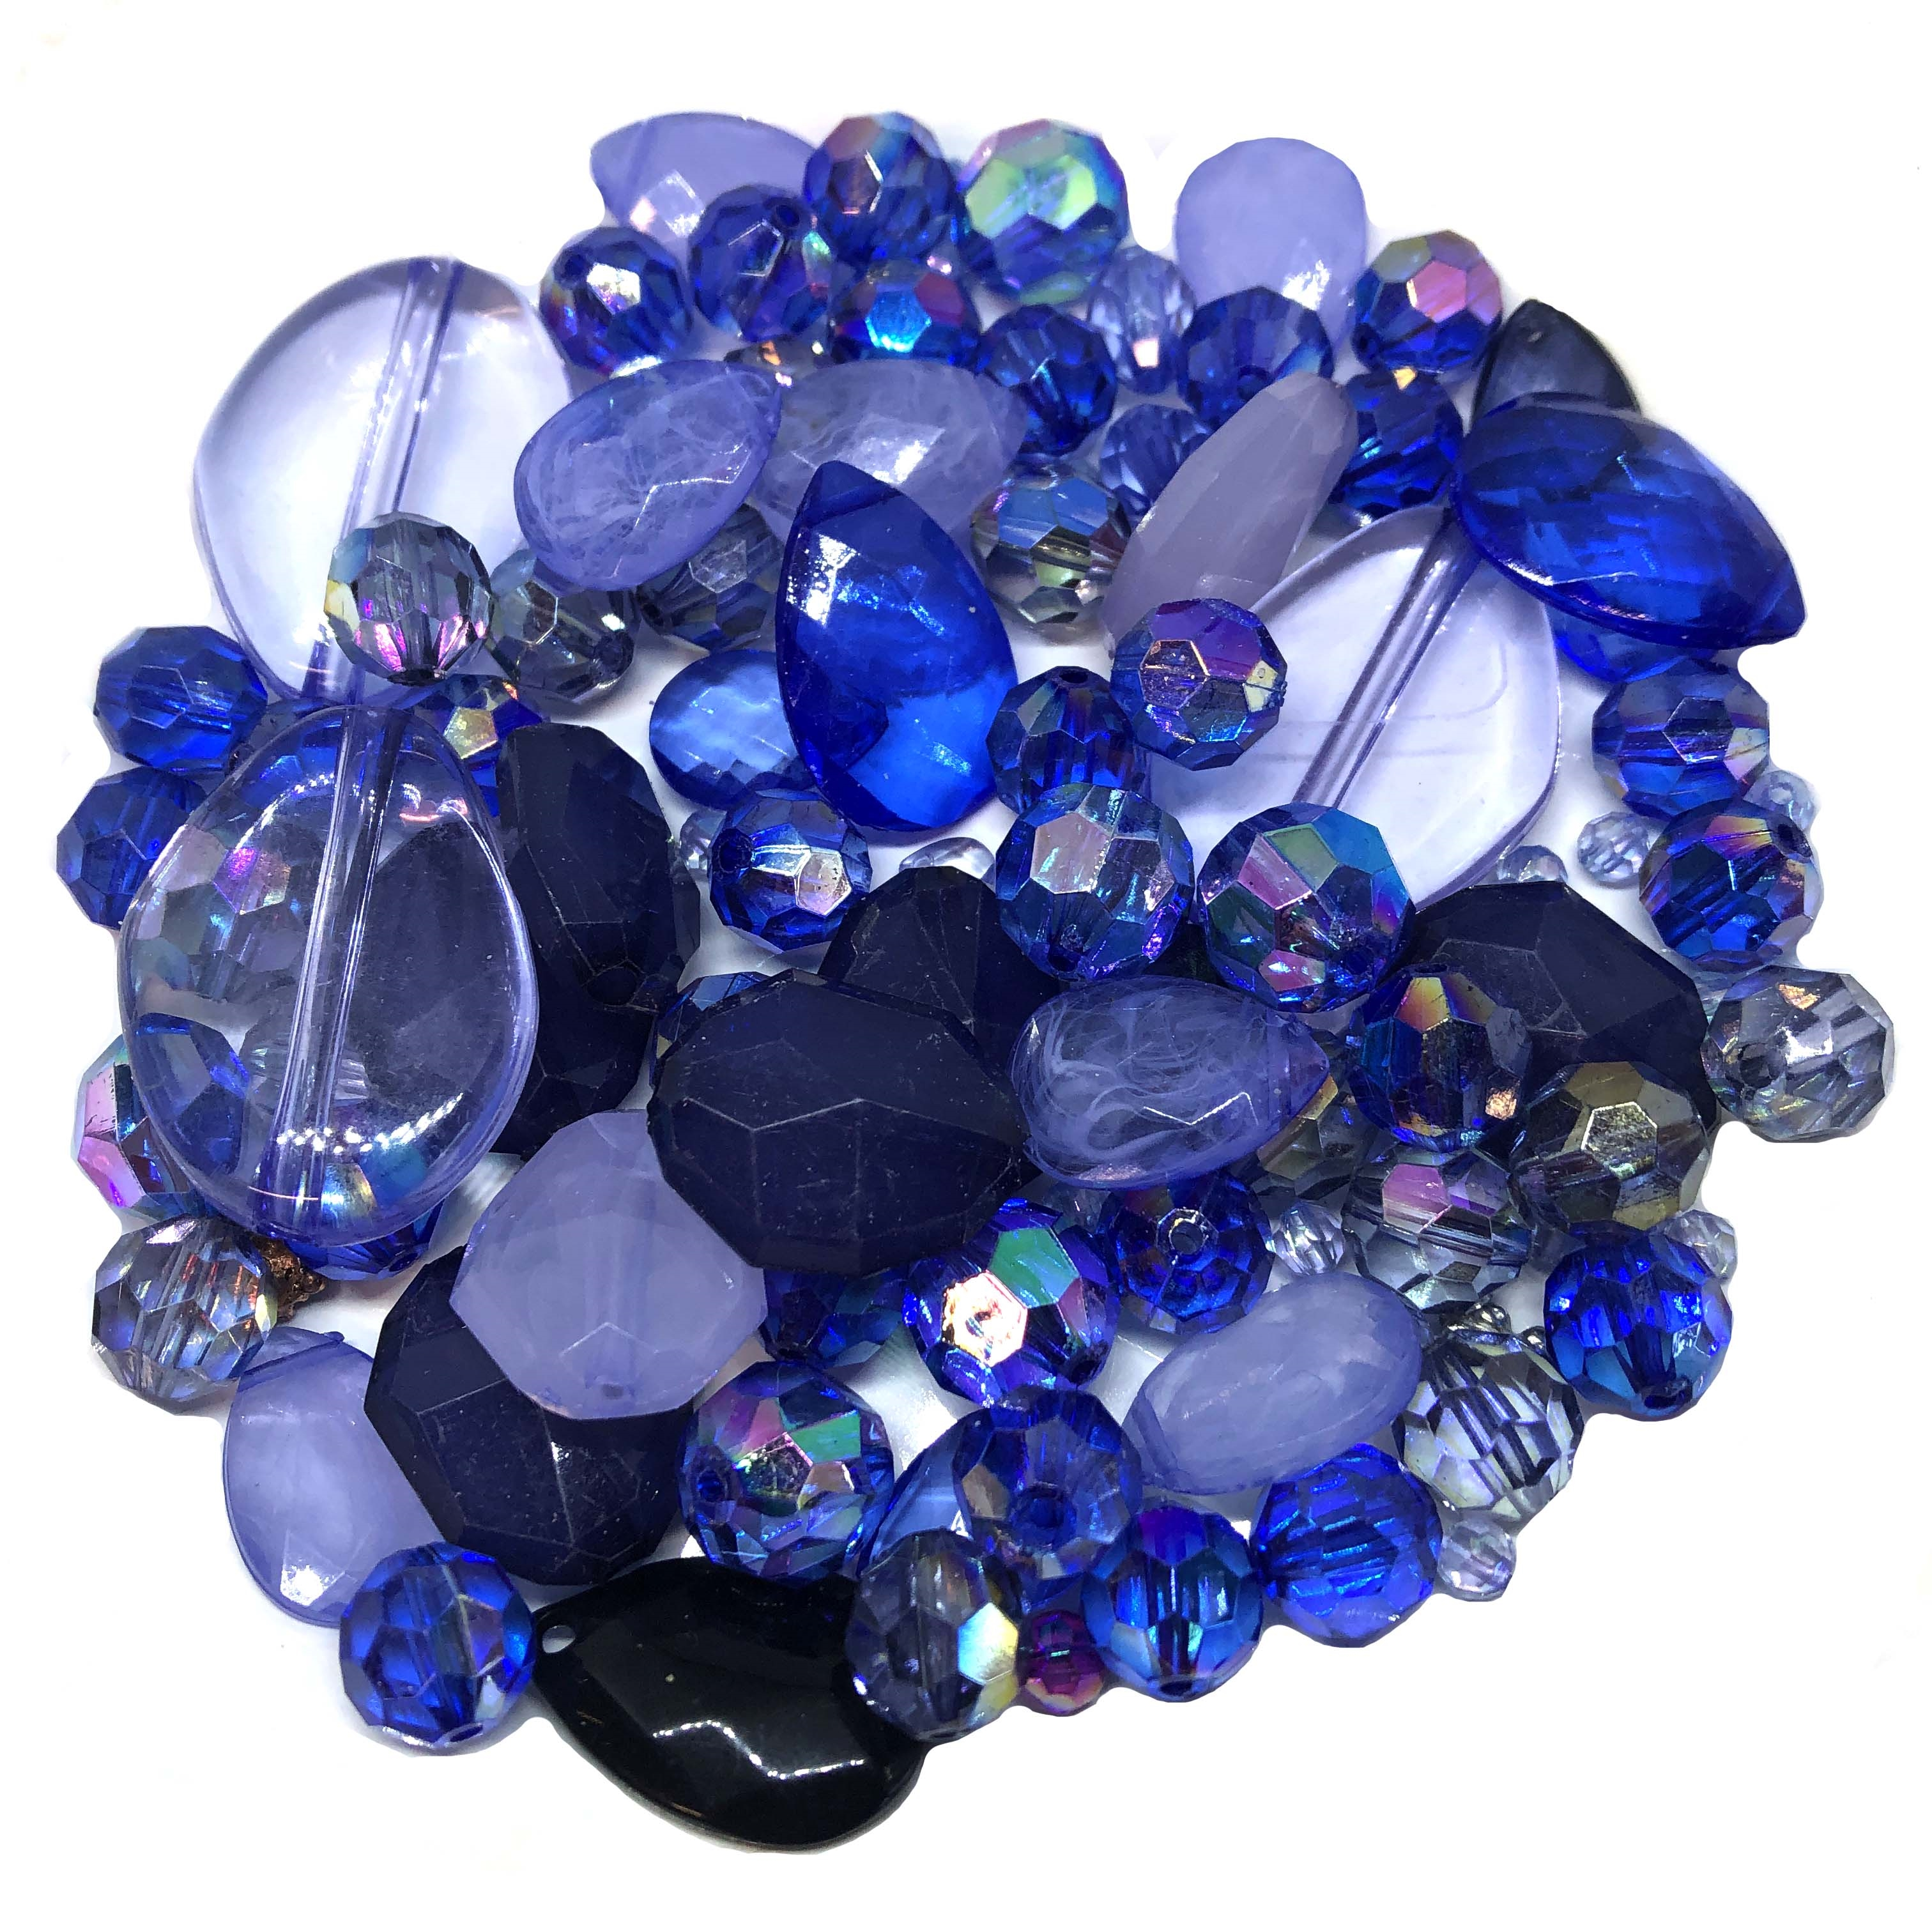 Moody Blue bead mix, Chunky Beads 05286, midnight sapphire ab, mixed blue beads, assorted beads, beading supplies, jewelry making supplies, vintage jewelry supplies,  fire polished beads, assorted briolettes